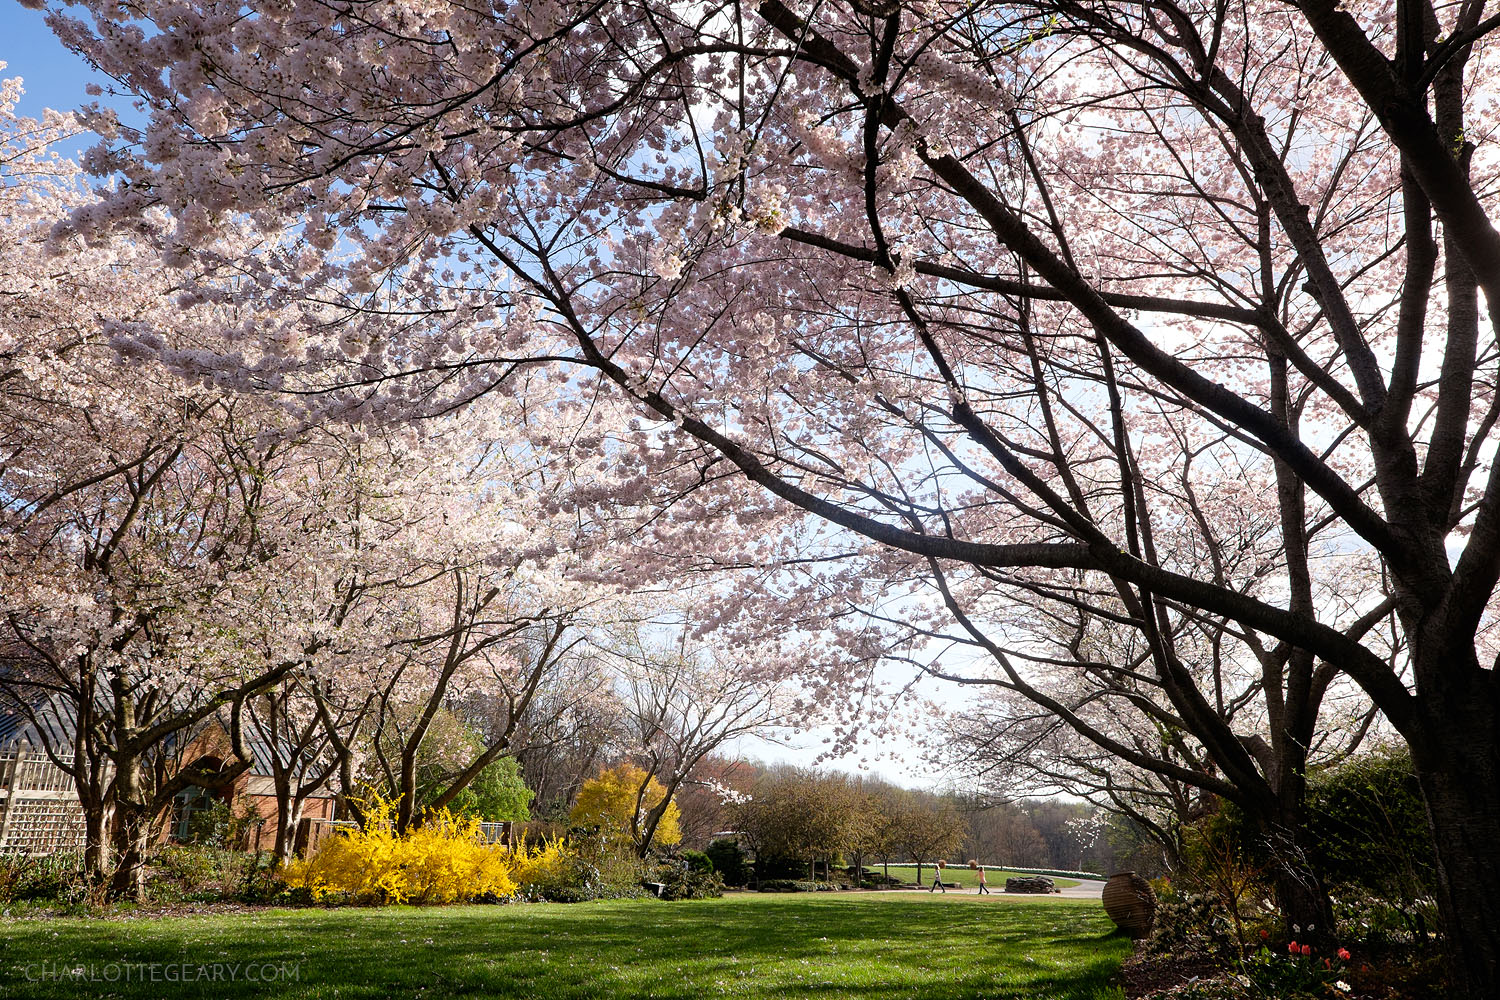 Cherry blossoms at Meadowlark Botanical Gardens in Vienna, Virginia